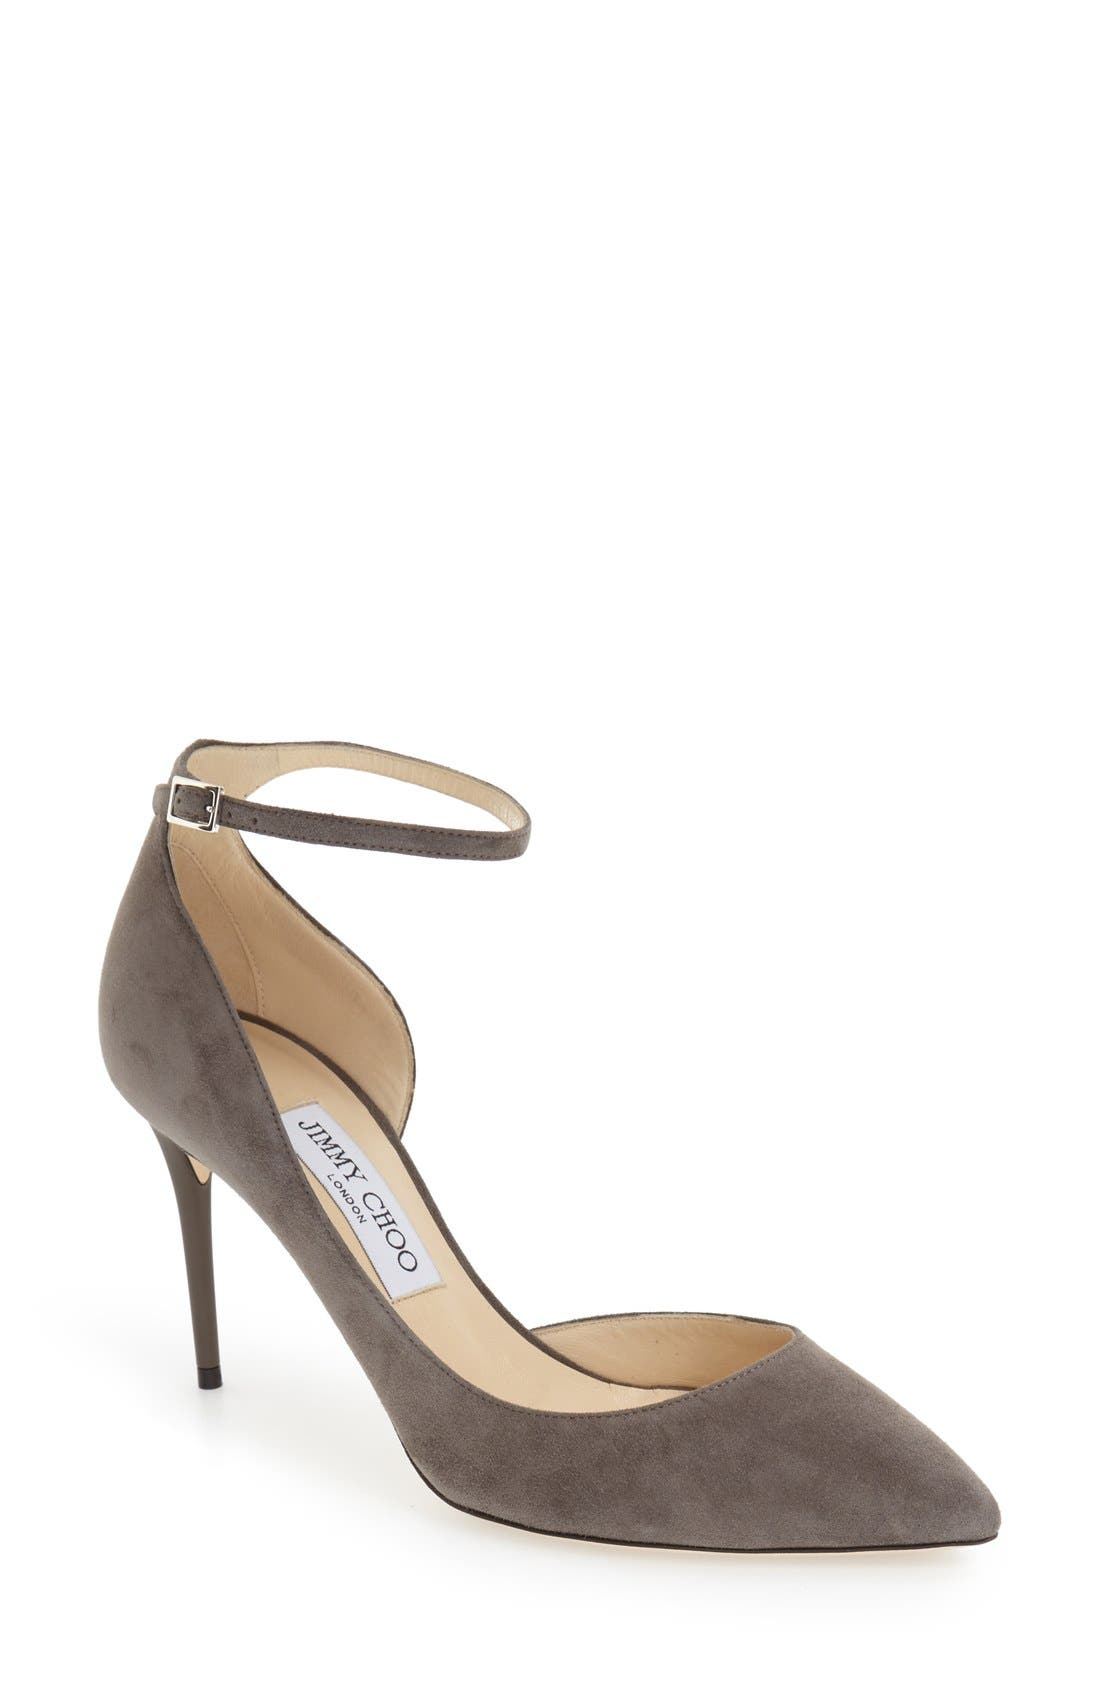 'Lucy' Half d'Orsay Pointy Toe Pump,                         Main,                         color, Taupe Grey Suede